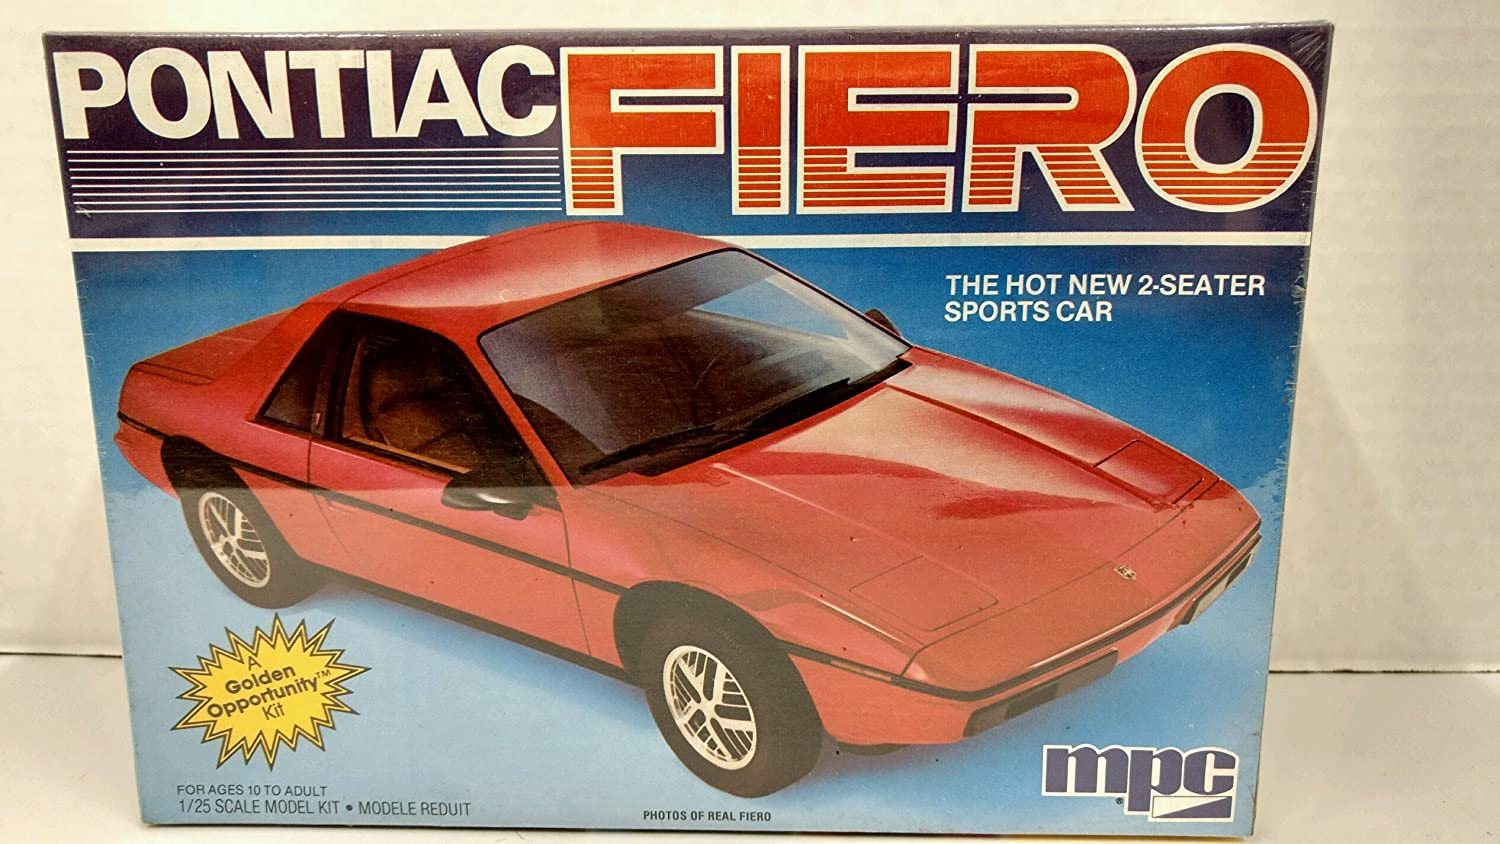 Mpc 1 0883 1984 Pontiac Fiero 125 Scale Plastic Model Kit Requires Assembly Toys Games